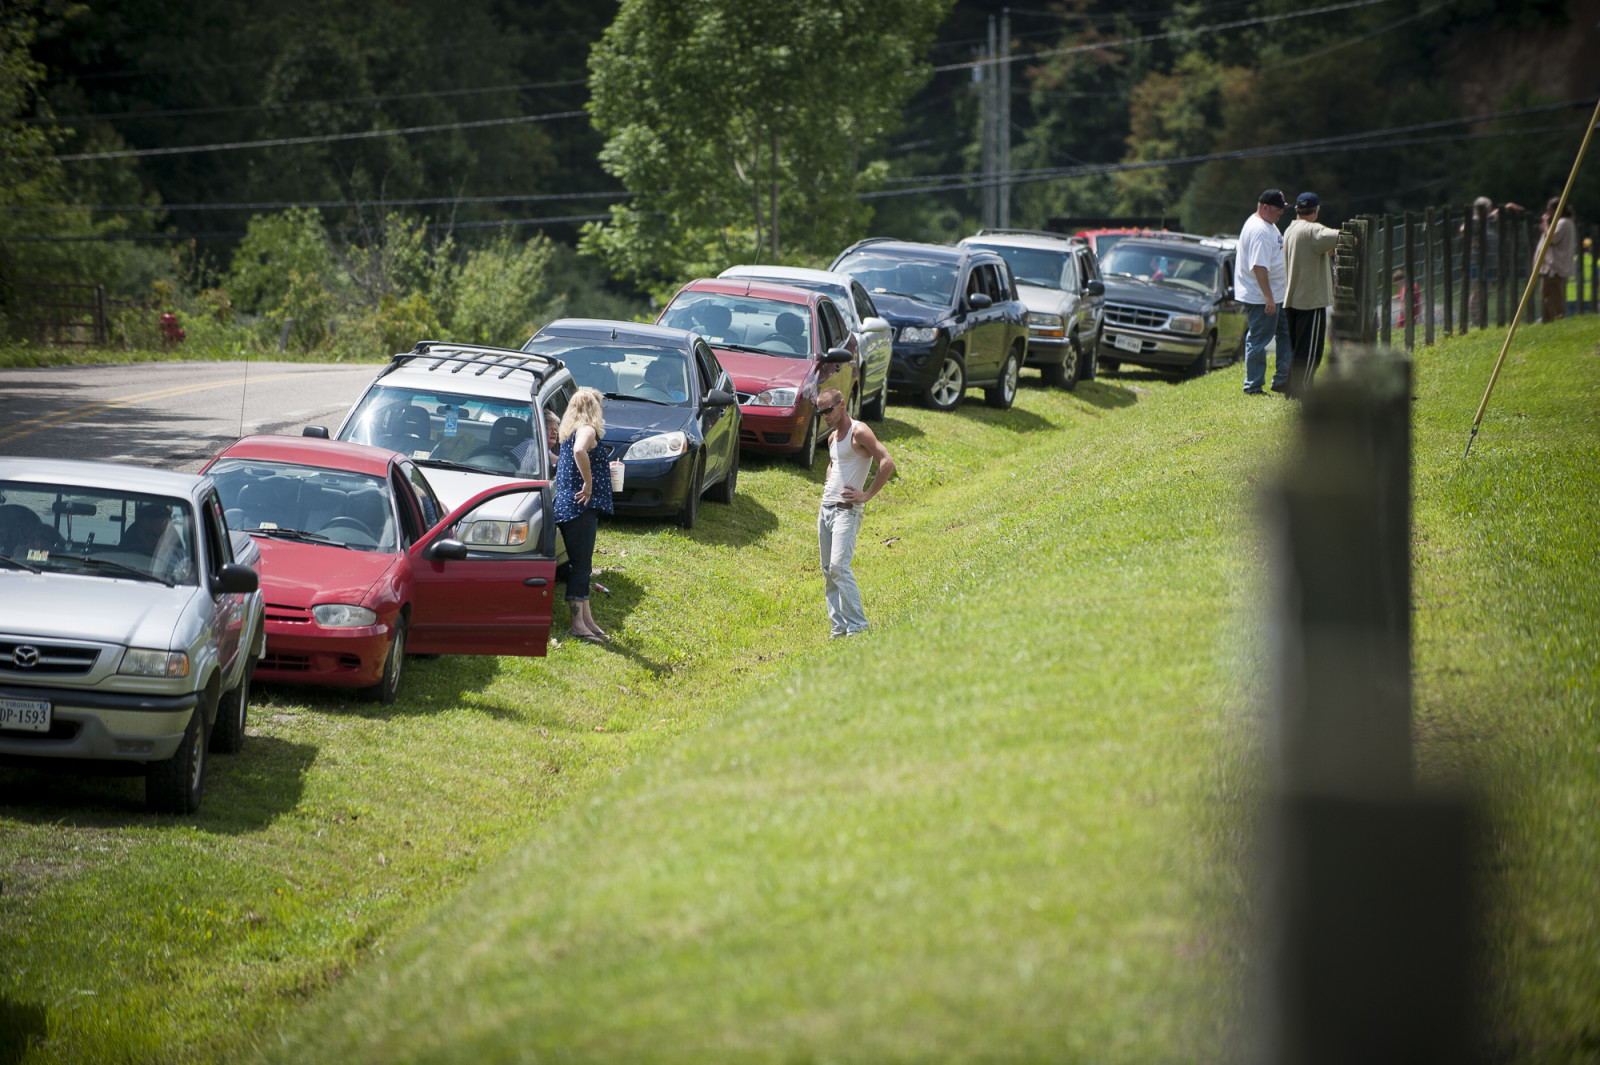 People wait for the gates to open at the Wise County Fairgrounds where they hope to receive free medical care at the 16th annual Remote Area Medical (RAM), clinic in Wise, Virginia, U.S., on Thursday, July 16, 2015. Photo: Pete Marovich/Bloomberg